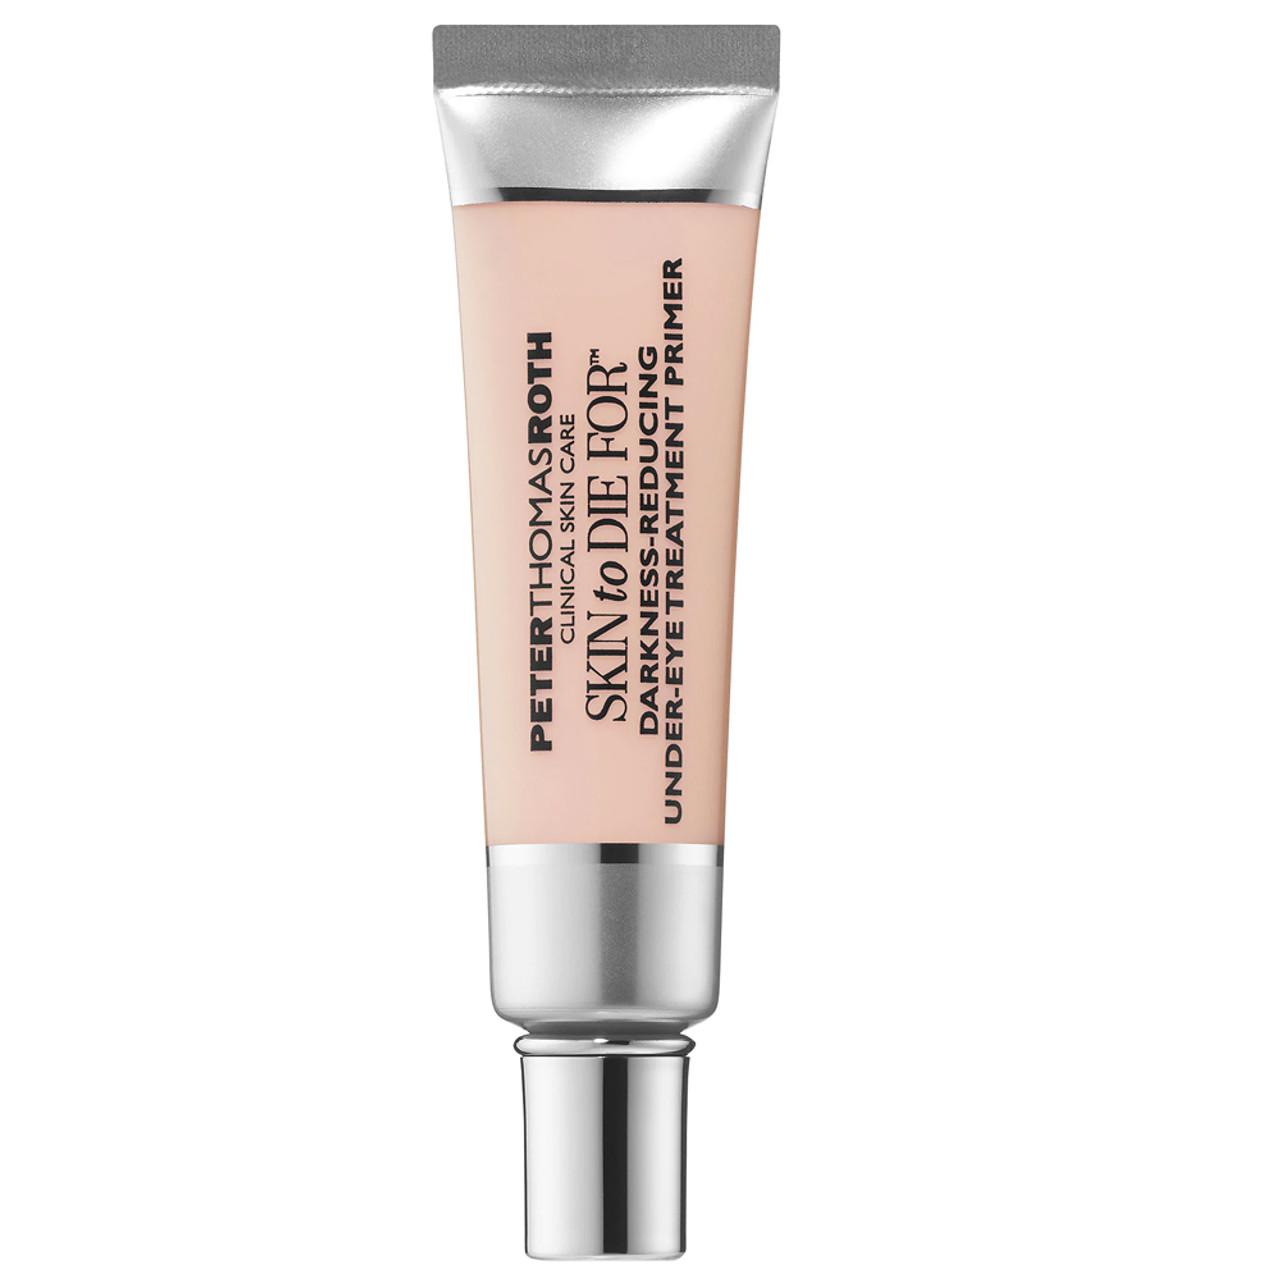 Peter Thomas Roth Skin To Die For Darkness-Reducing Under Eye Treatment Primer BeautifiedYou.com